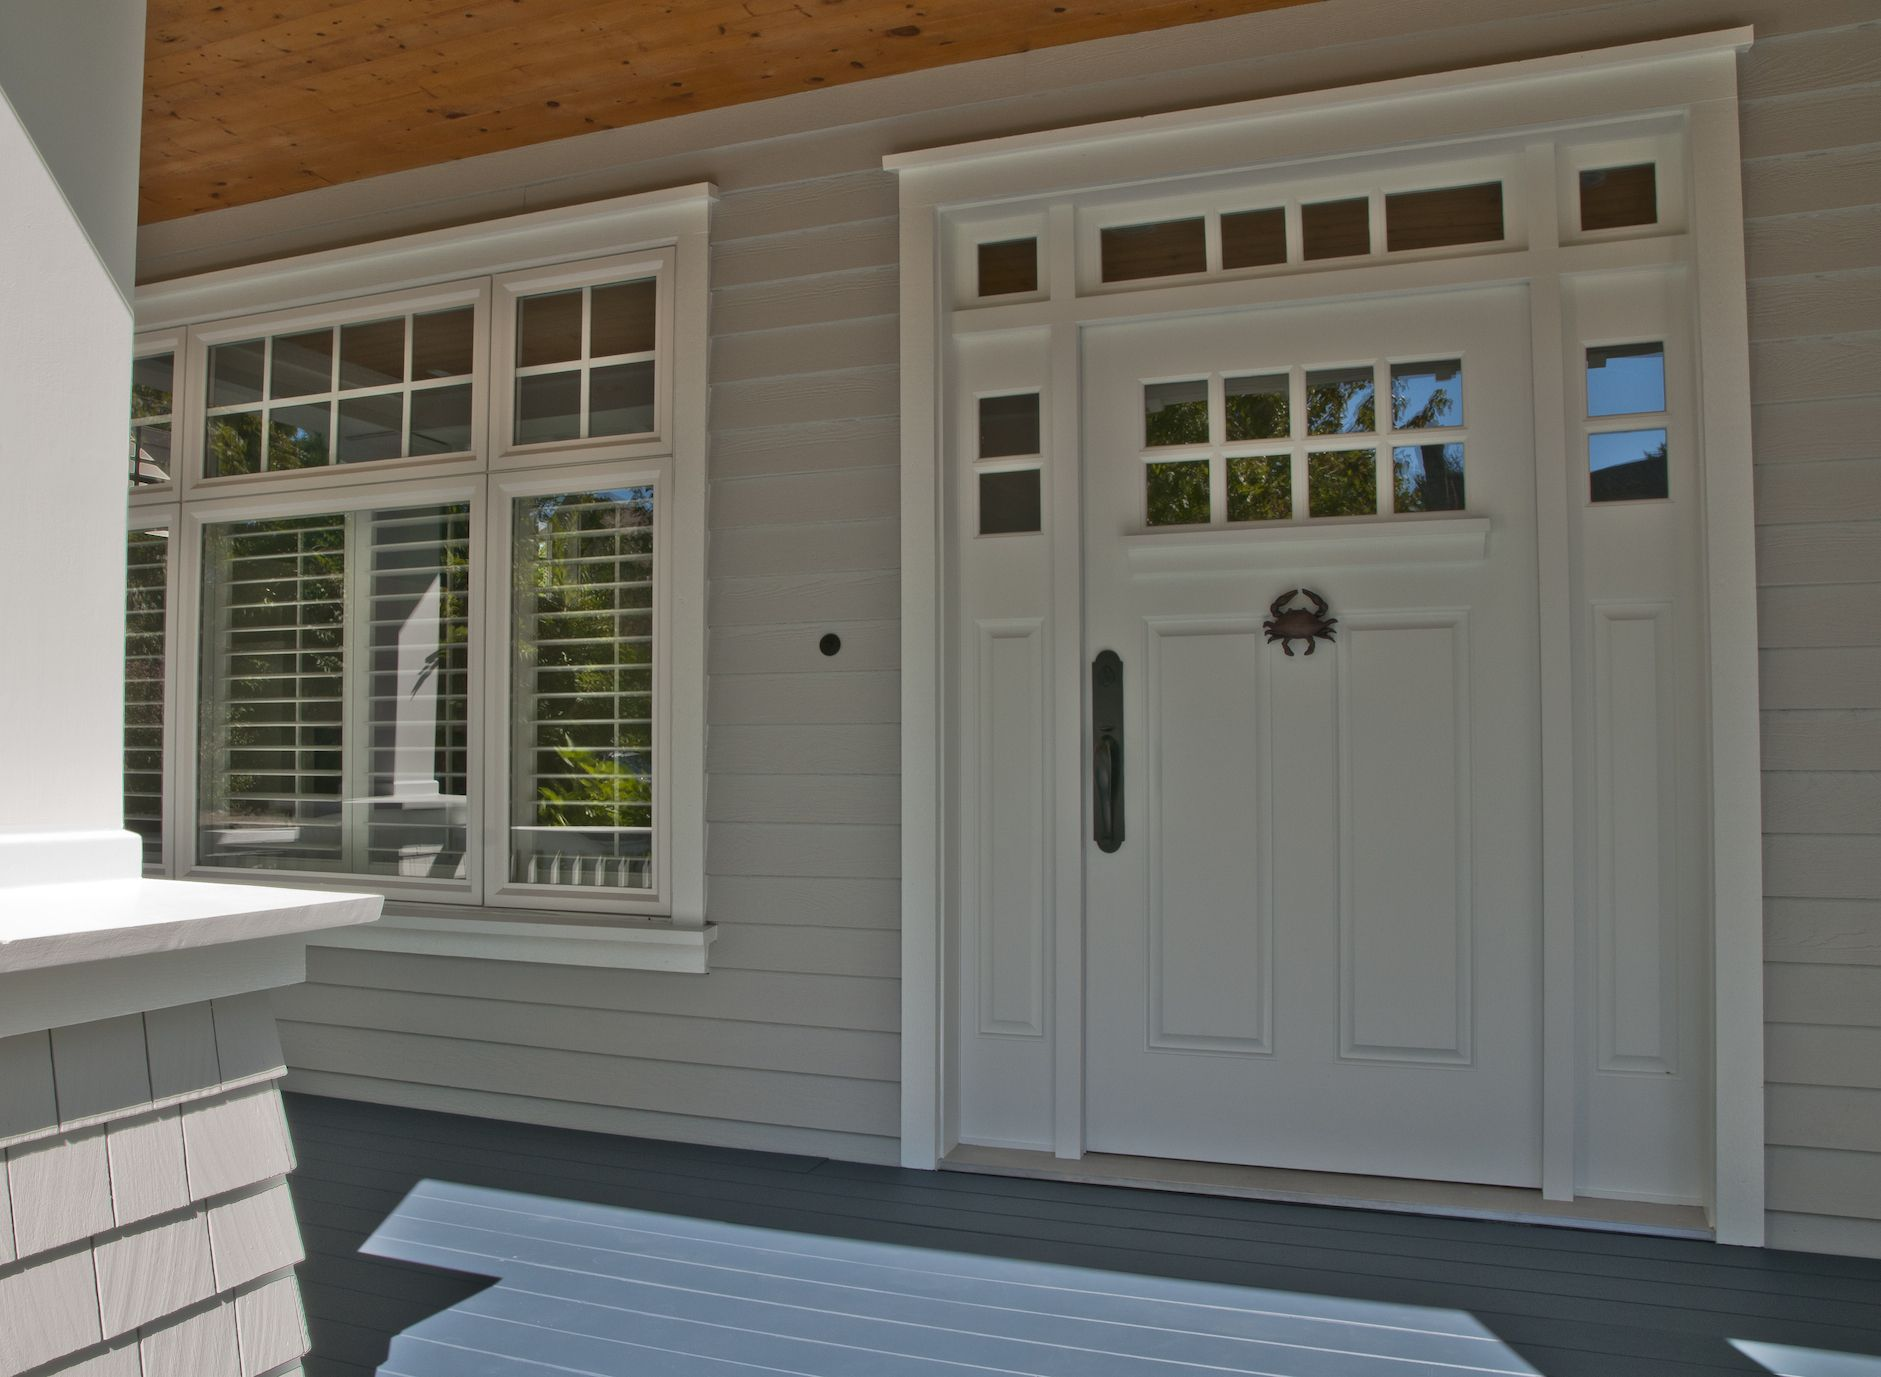 Exterior house colors for 2013 - Stonington Gray Exterior Navy Blue Porch Floors Best Exterior